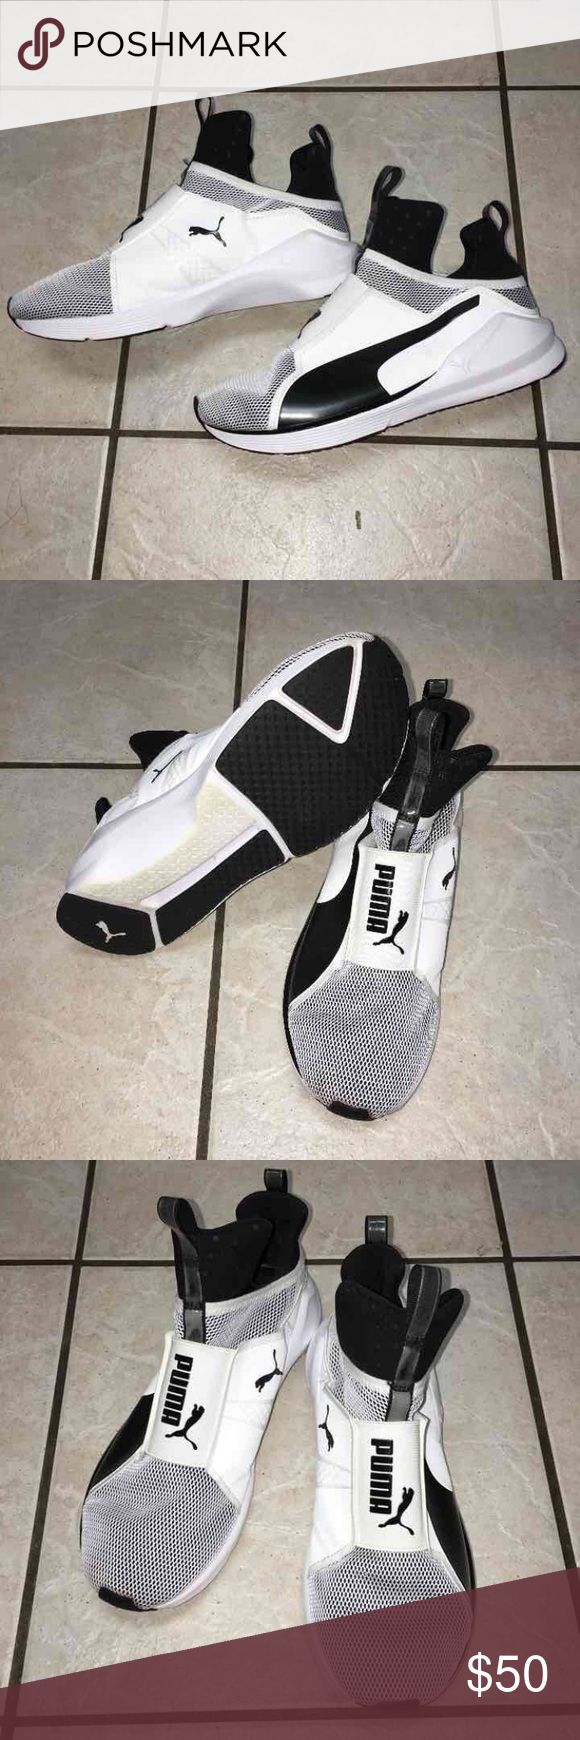 Kylie Jenner Puma Fierce Trainers Puma Fierce Trainers designed and worn by Kylie Jenner. Excellent used condition with no stains rips or tears. Women's size 8.5. Also have these listed in red! Puma Shoes Sneakers